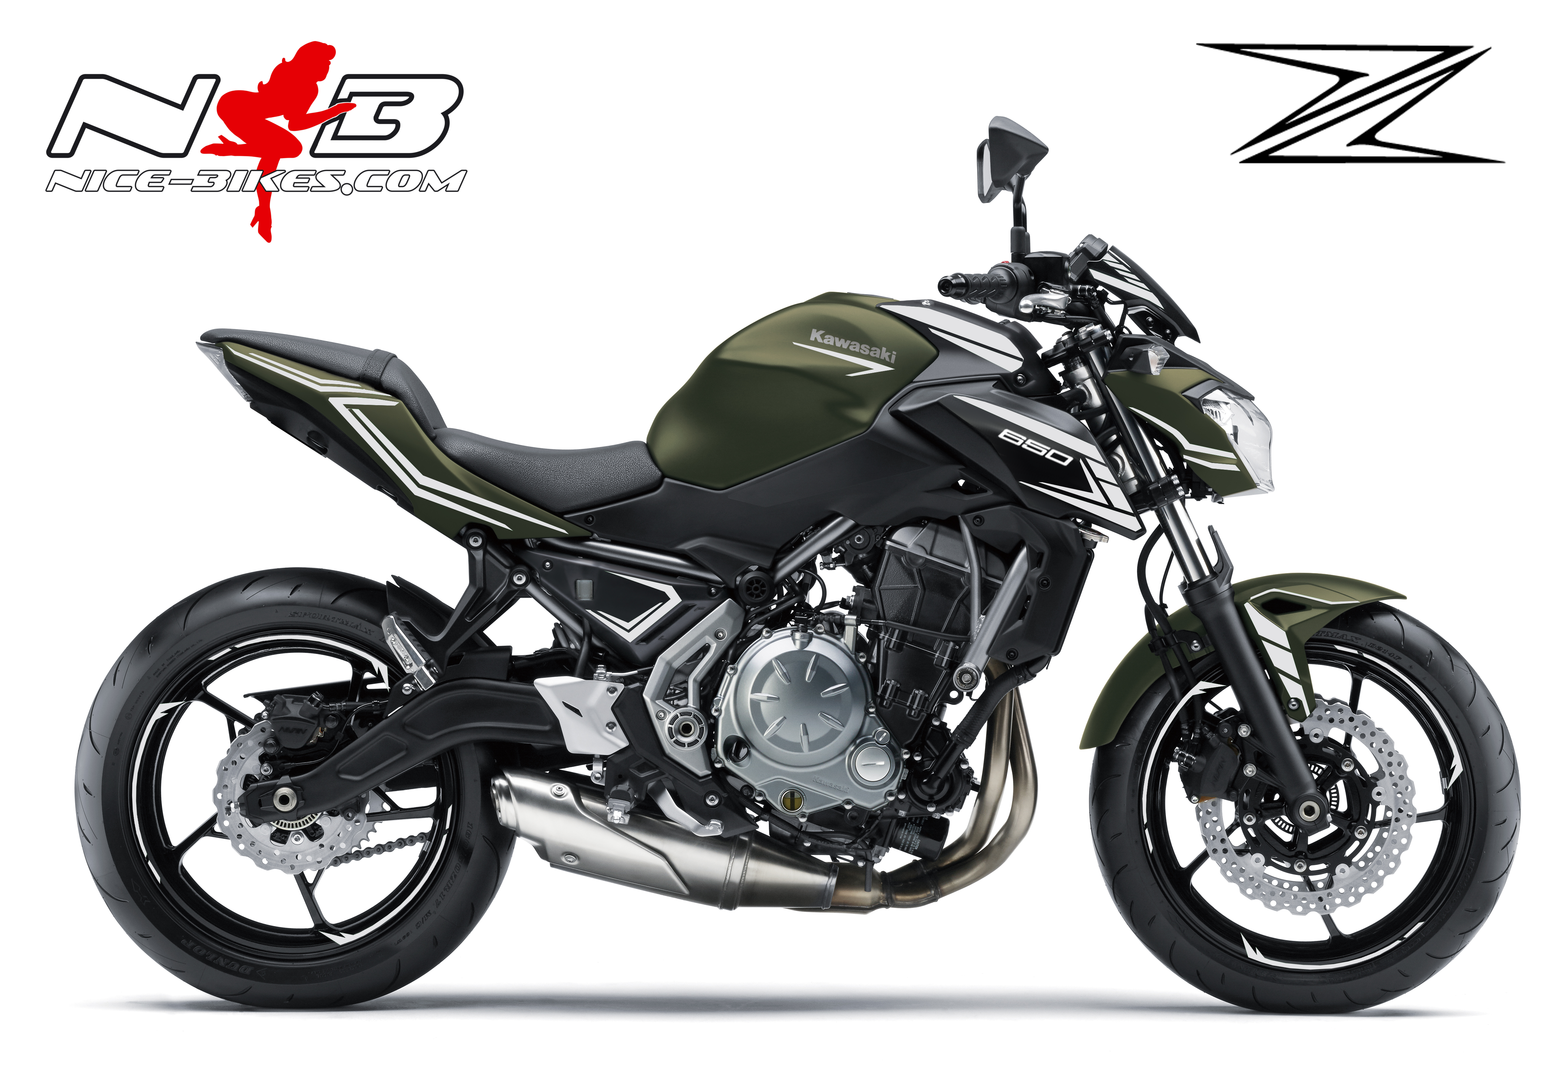 Z650 Dekor in Silbersee Metallic für Metallic Matte Covert Green / Flat Spark